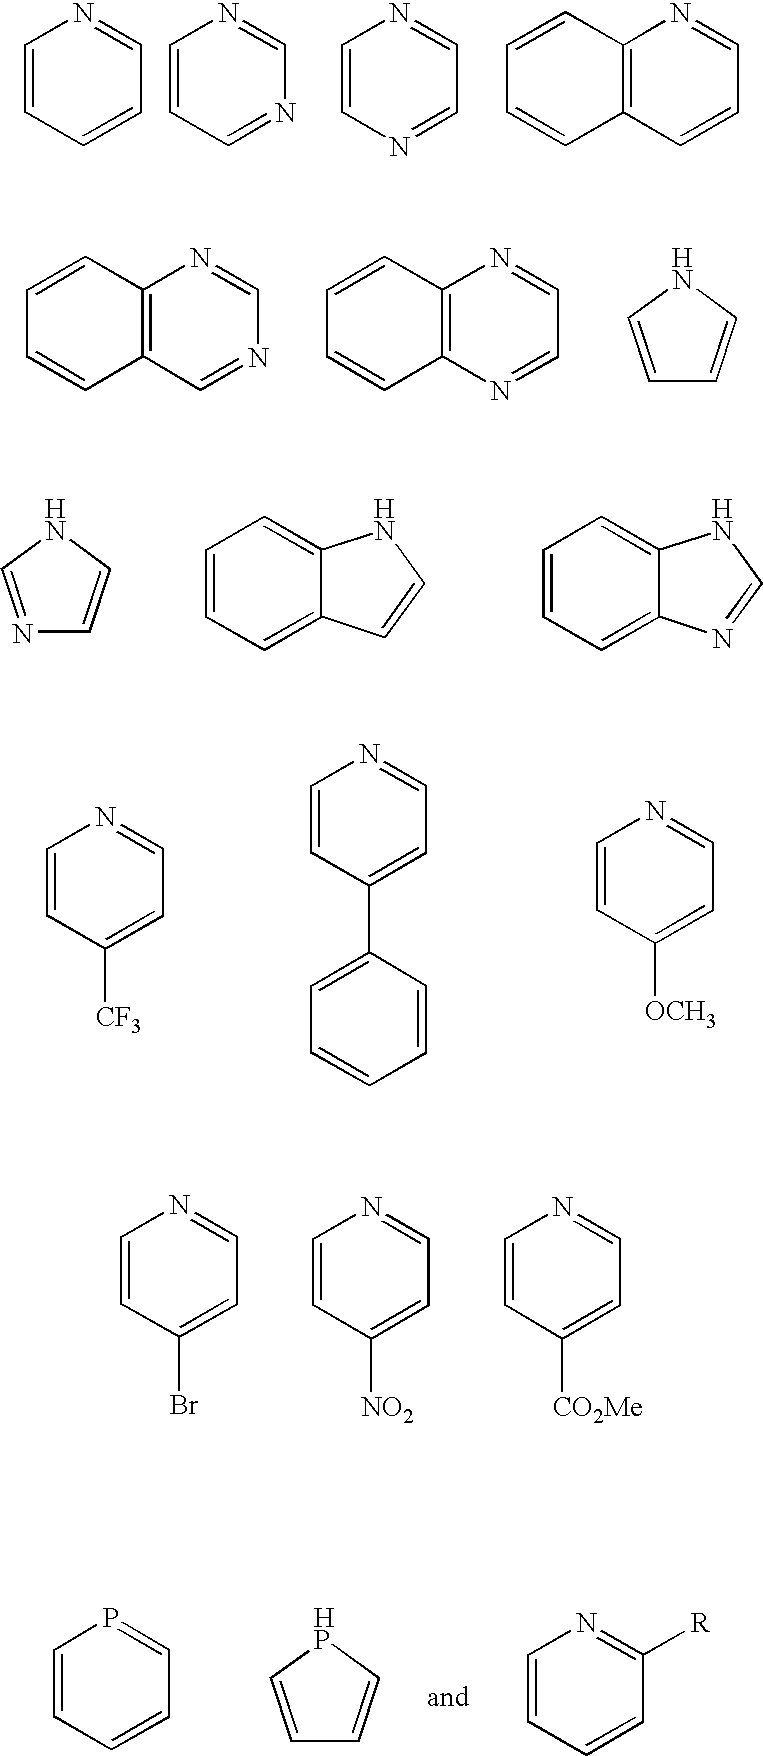 ruthenium carbene metathesis Abstract the state-of-the-art in olefin metathesis is application of n-heterocyclic carbene (nhc)-containing ruthenium alkylidenes for the formation of internal c=c bonds and of cyclic alkyl amino carbene (caac)-containing ruthenium benzylidenes in the production of terminal olefins.